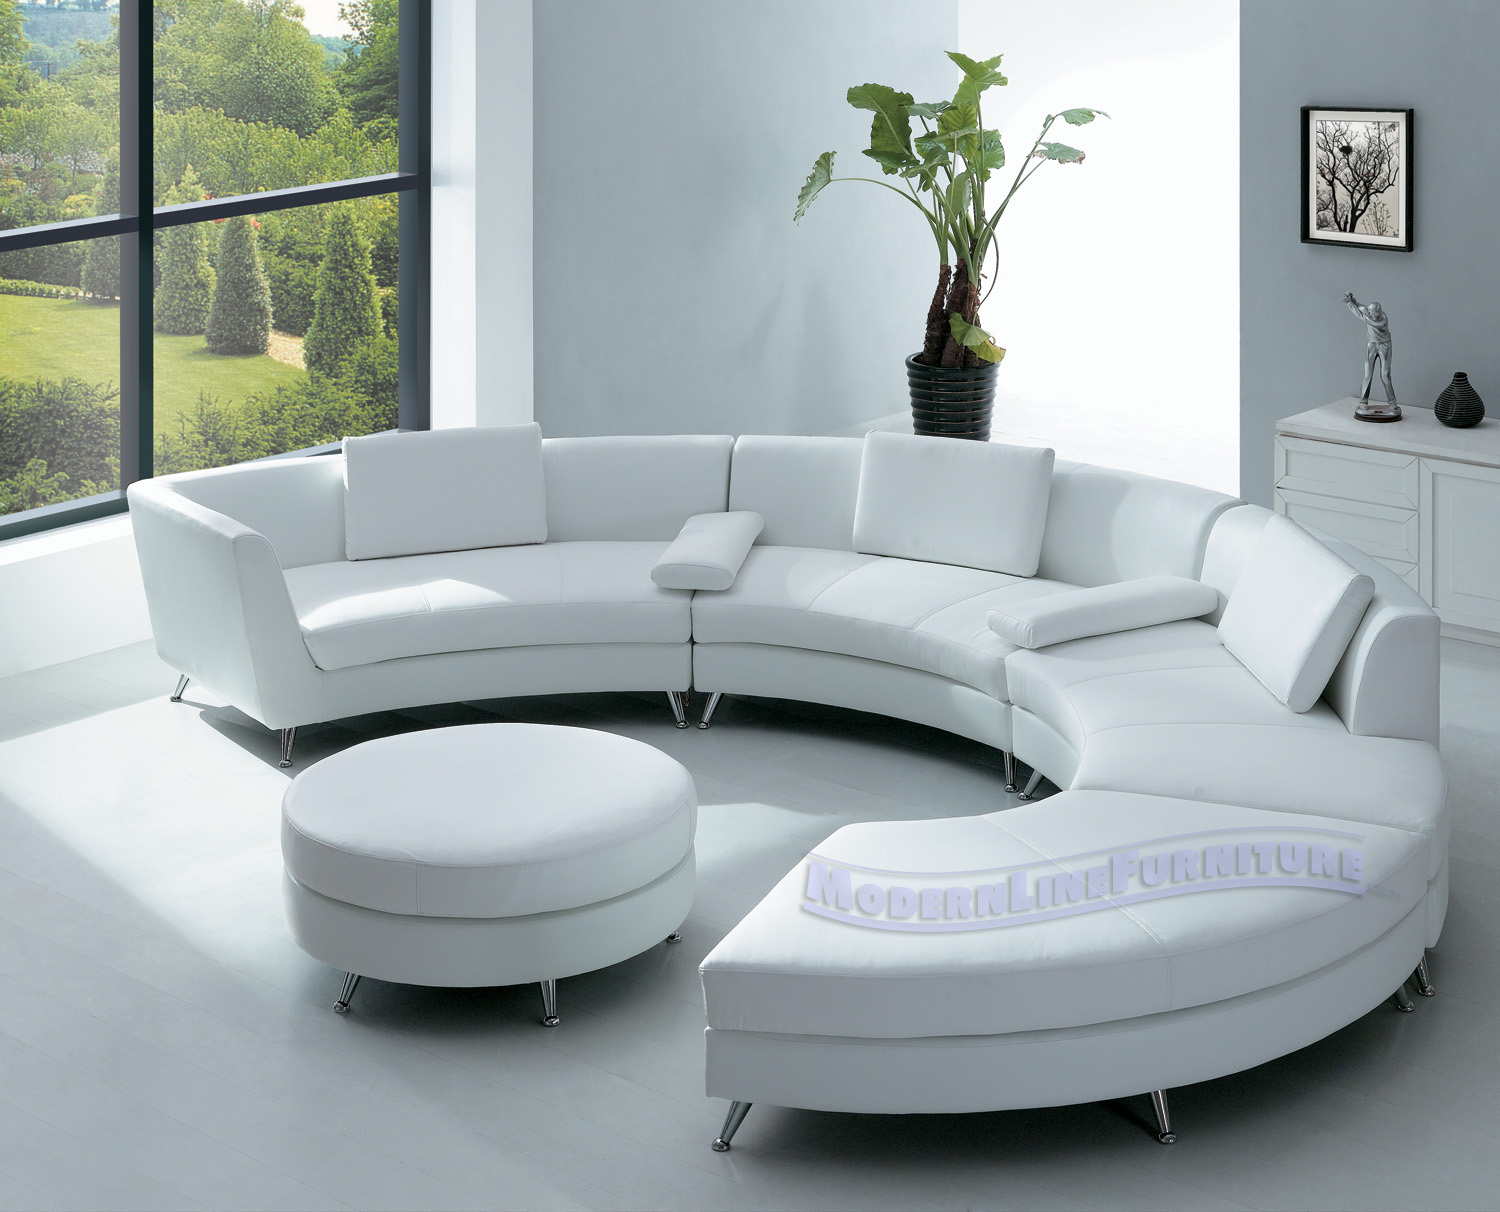 living sofa design sofaco cote d ivoire beautiful couch designs